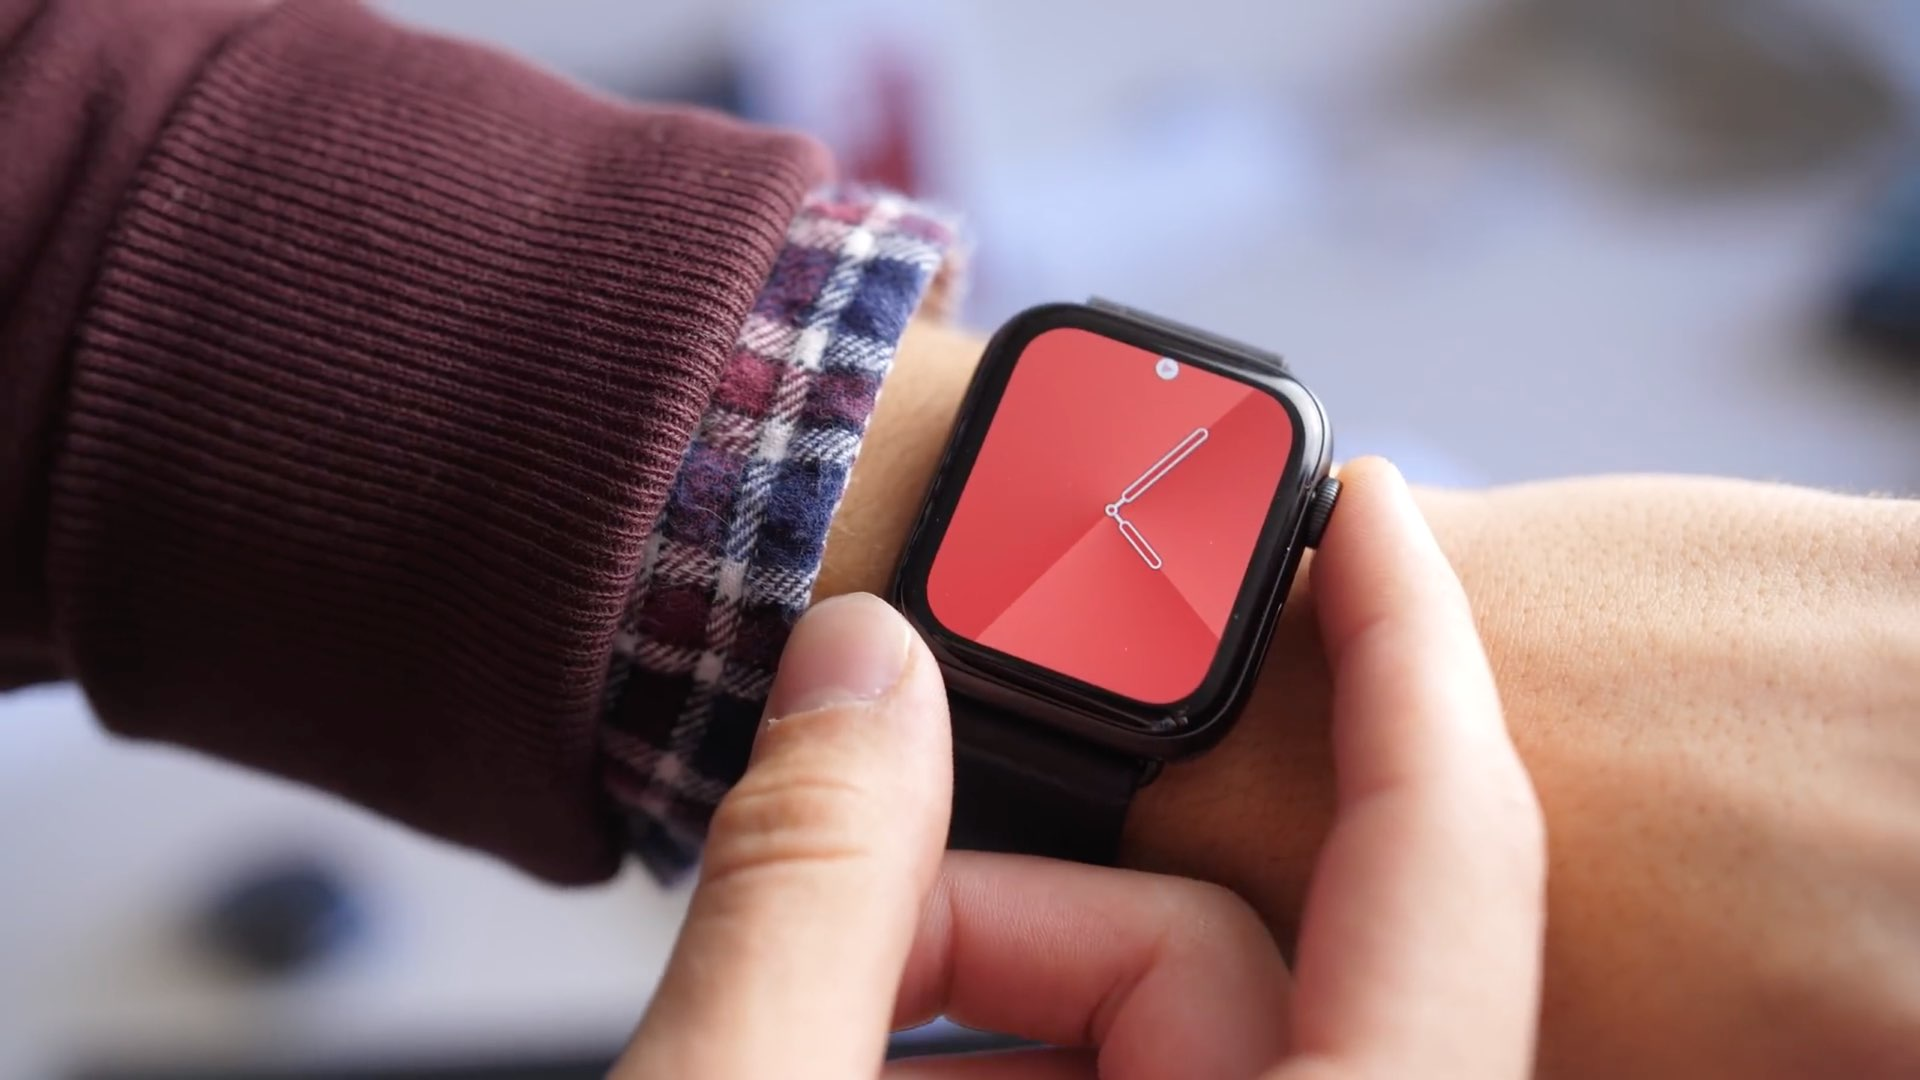 Apple releases watchOS 6.1.3 with bug fixes